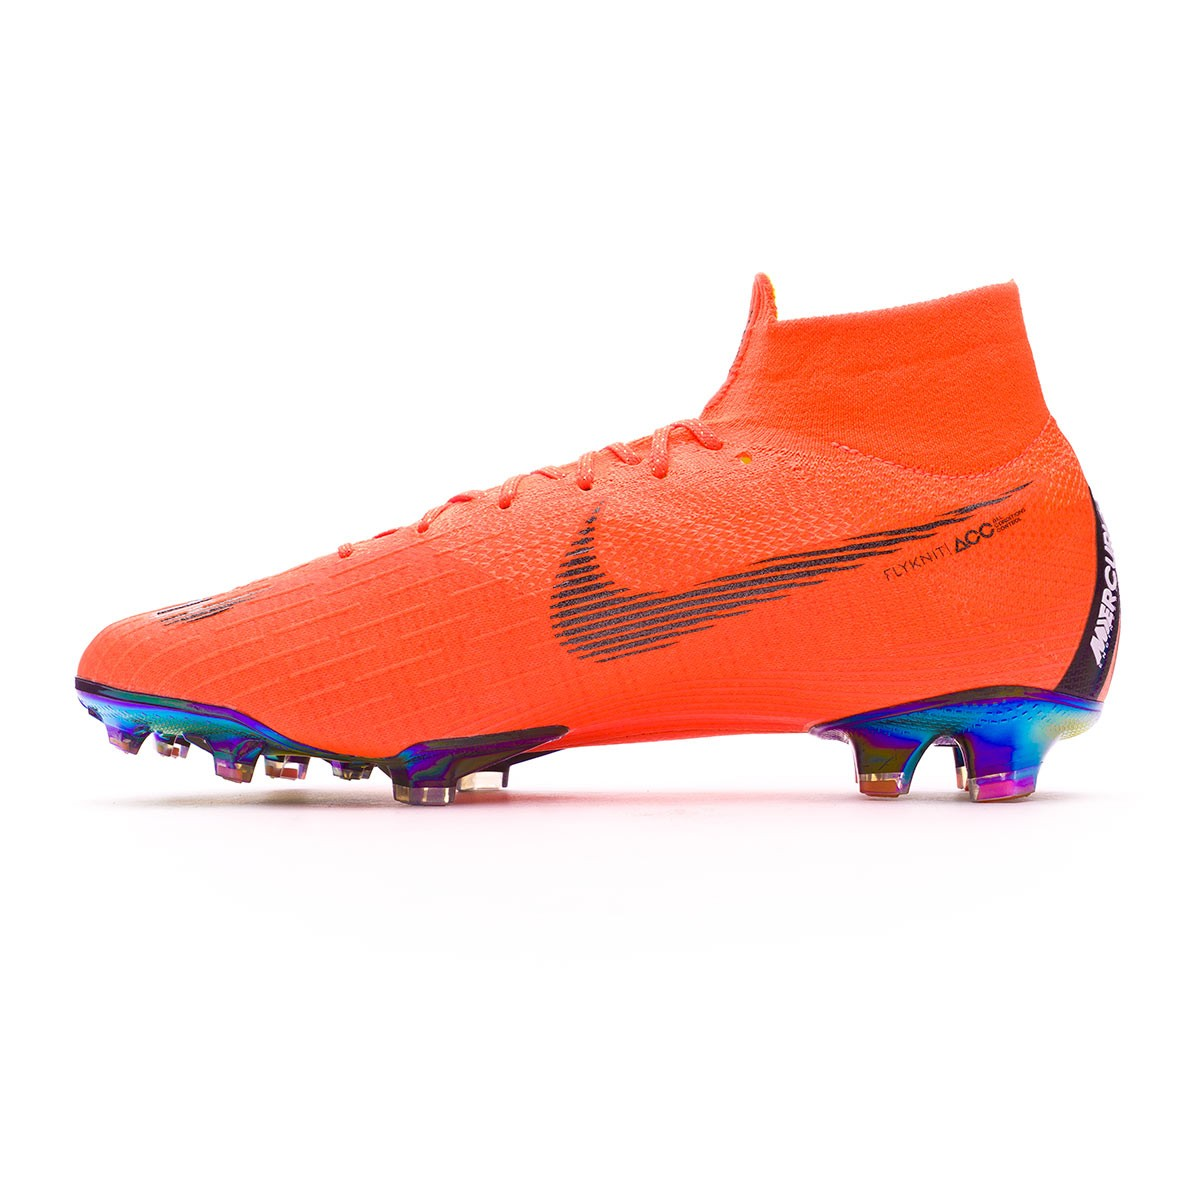 0bd864c6973b Football Boots Nike Mercurial Superfly VI Elite FG Total orange-Black-Volt  - Football store Fútbol Emotion